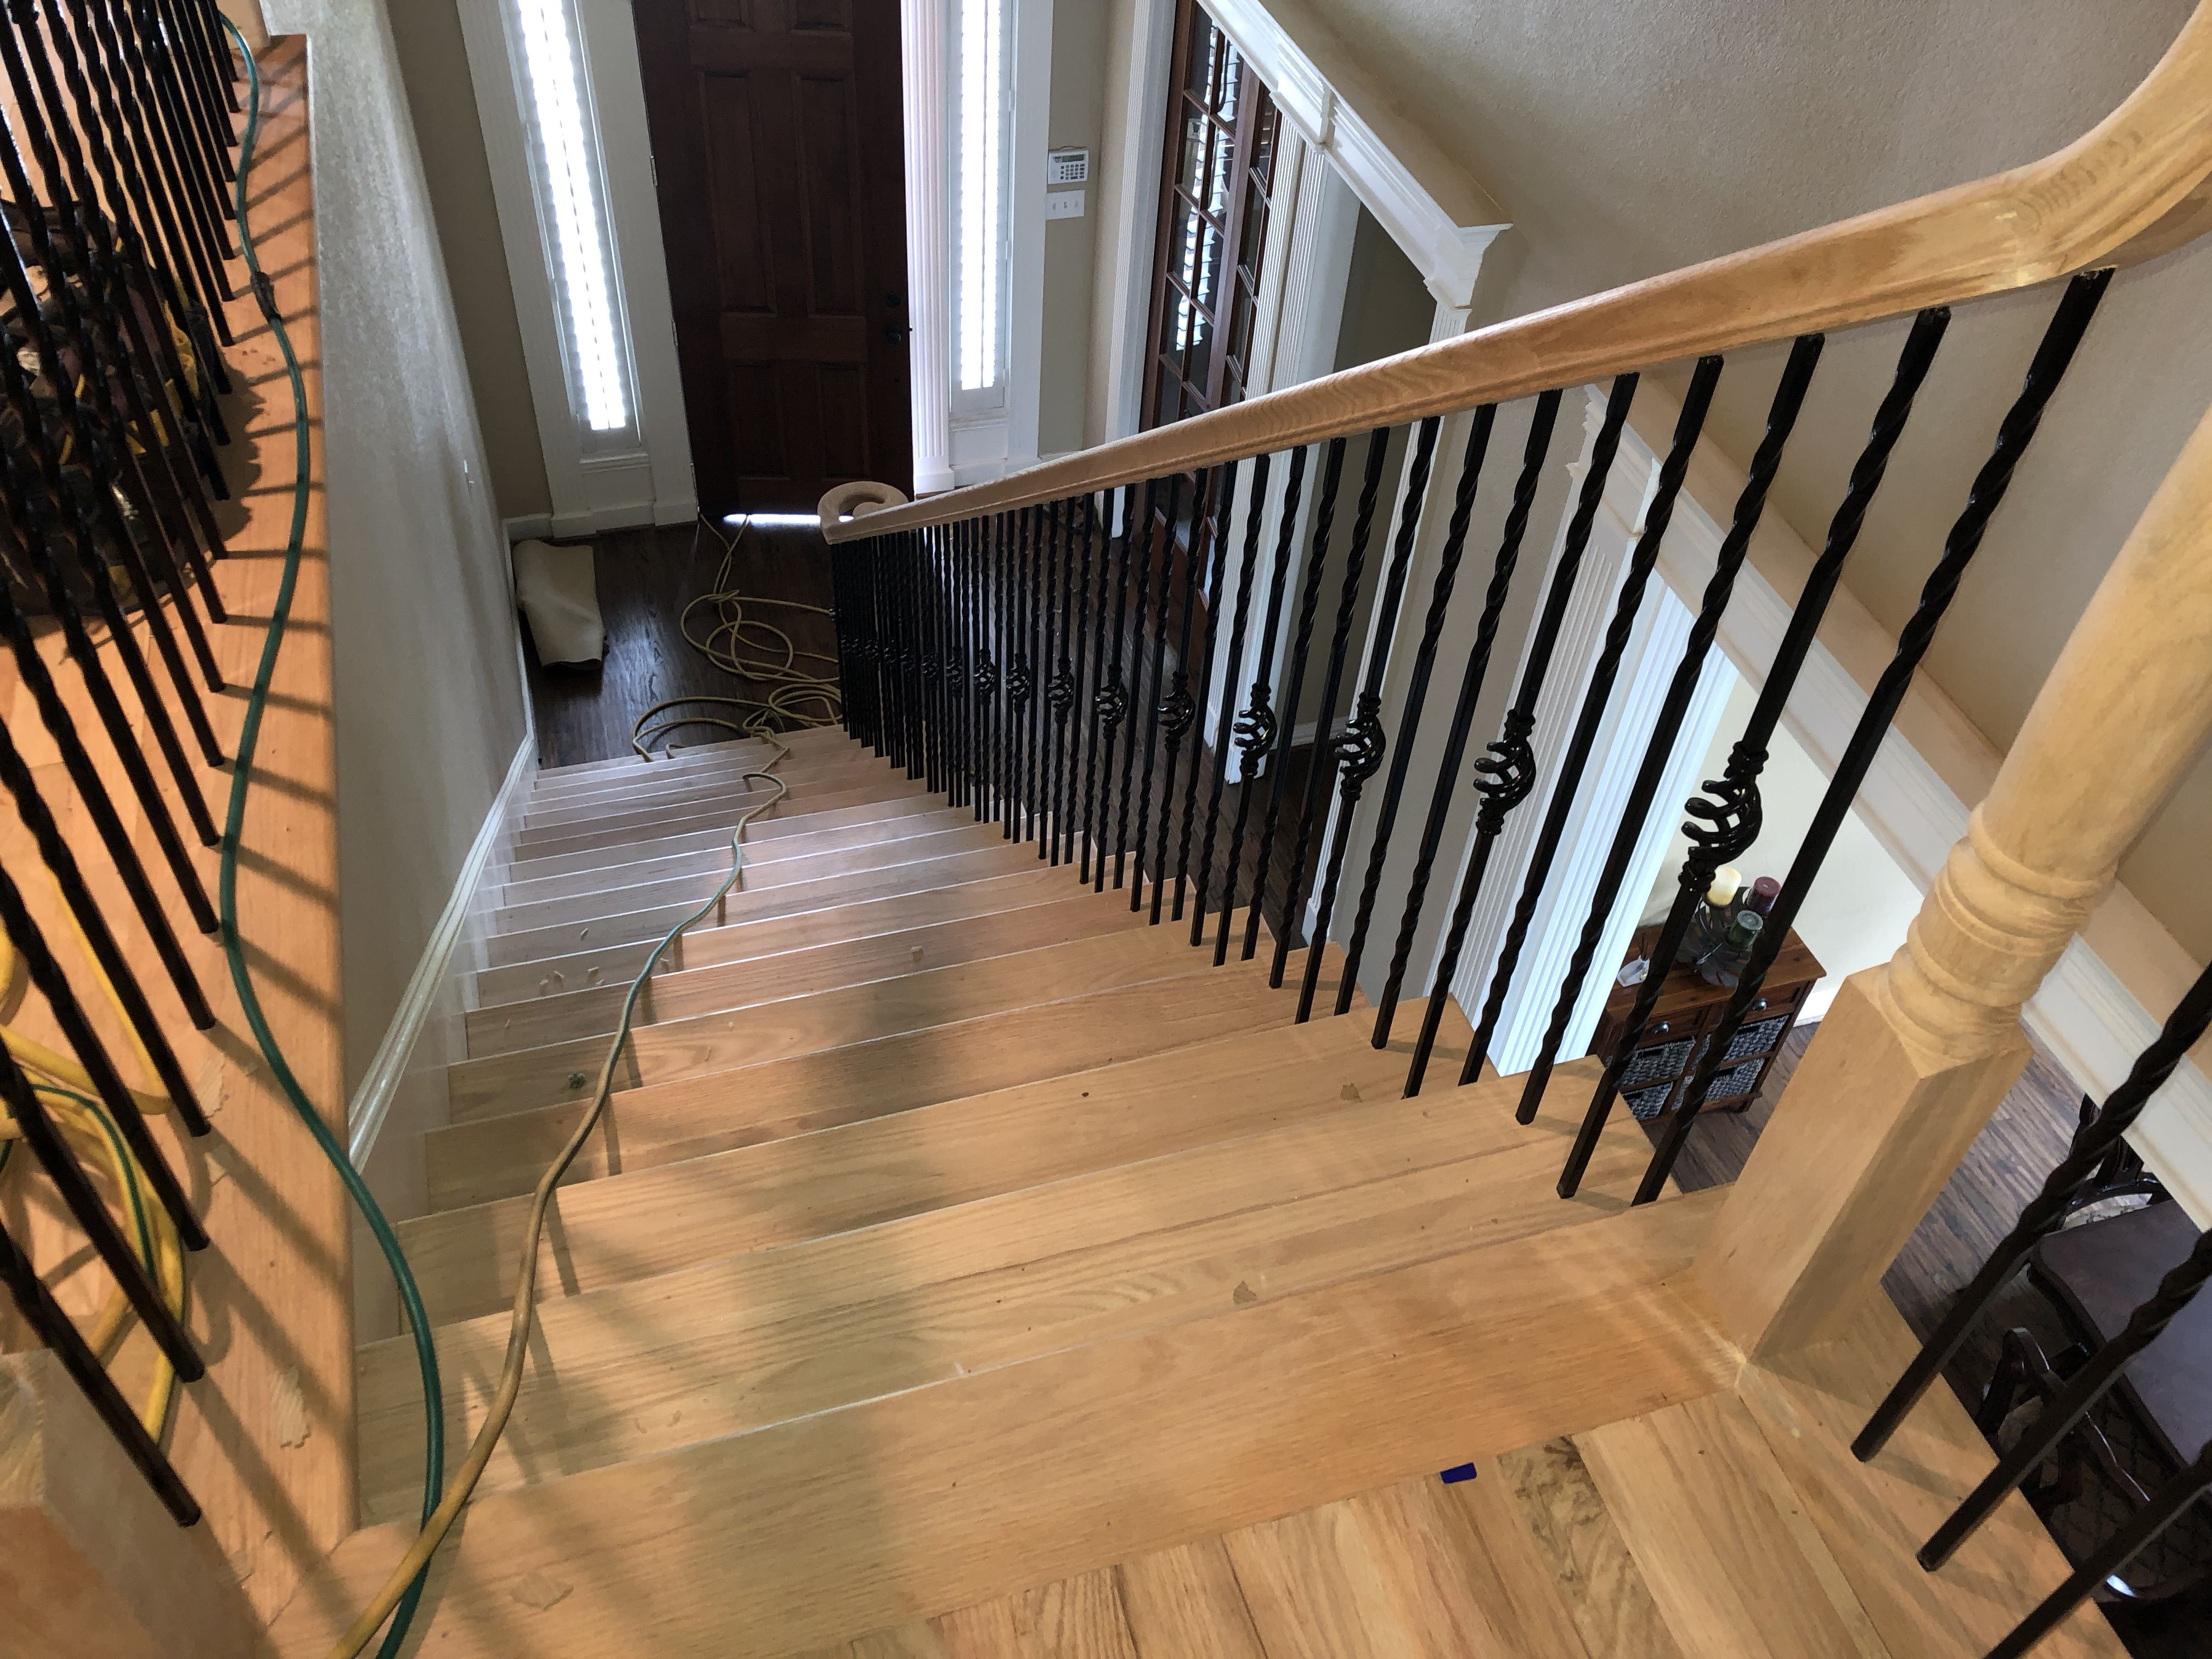 Wood Staircase, Solid Wood, Wooden Ladder, Hardwood, Wooden Stairs